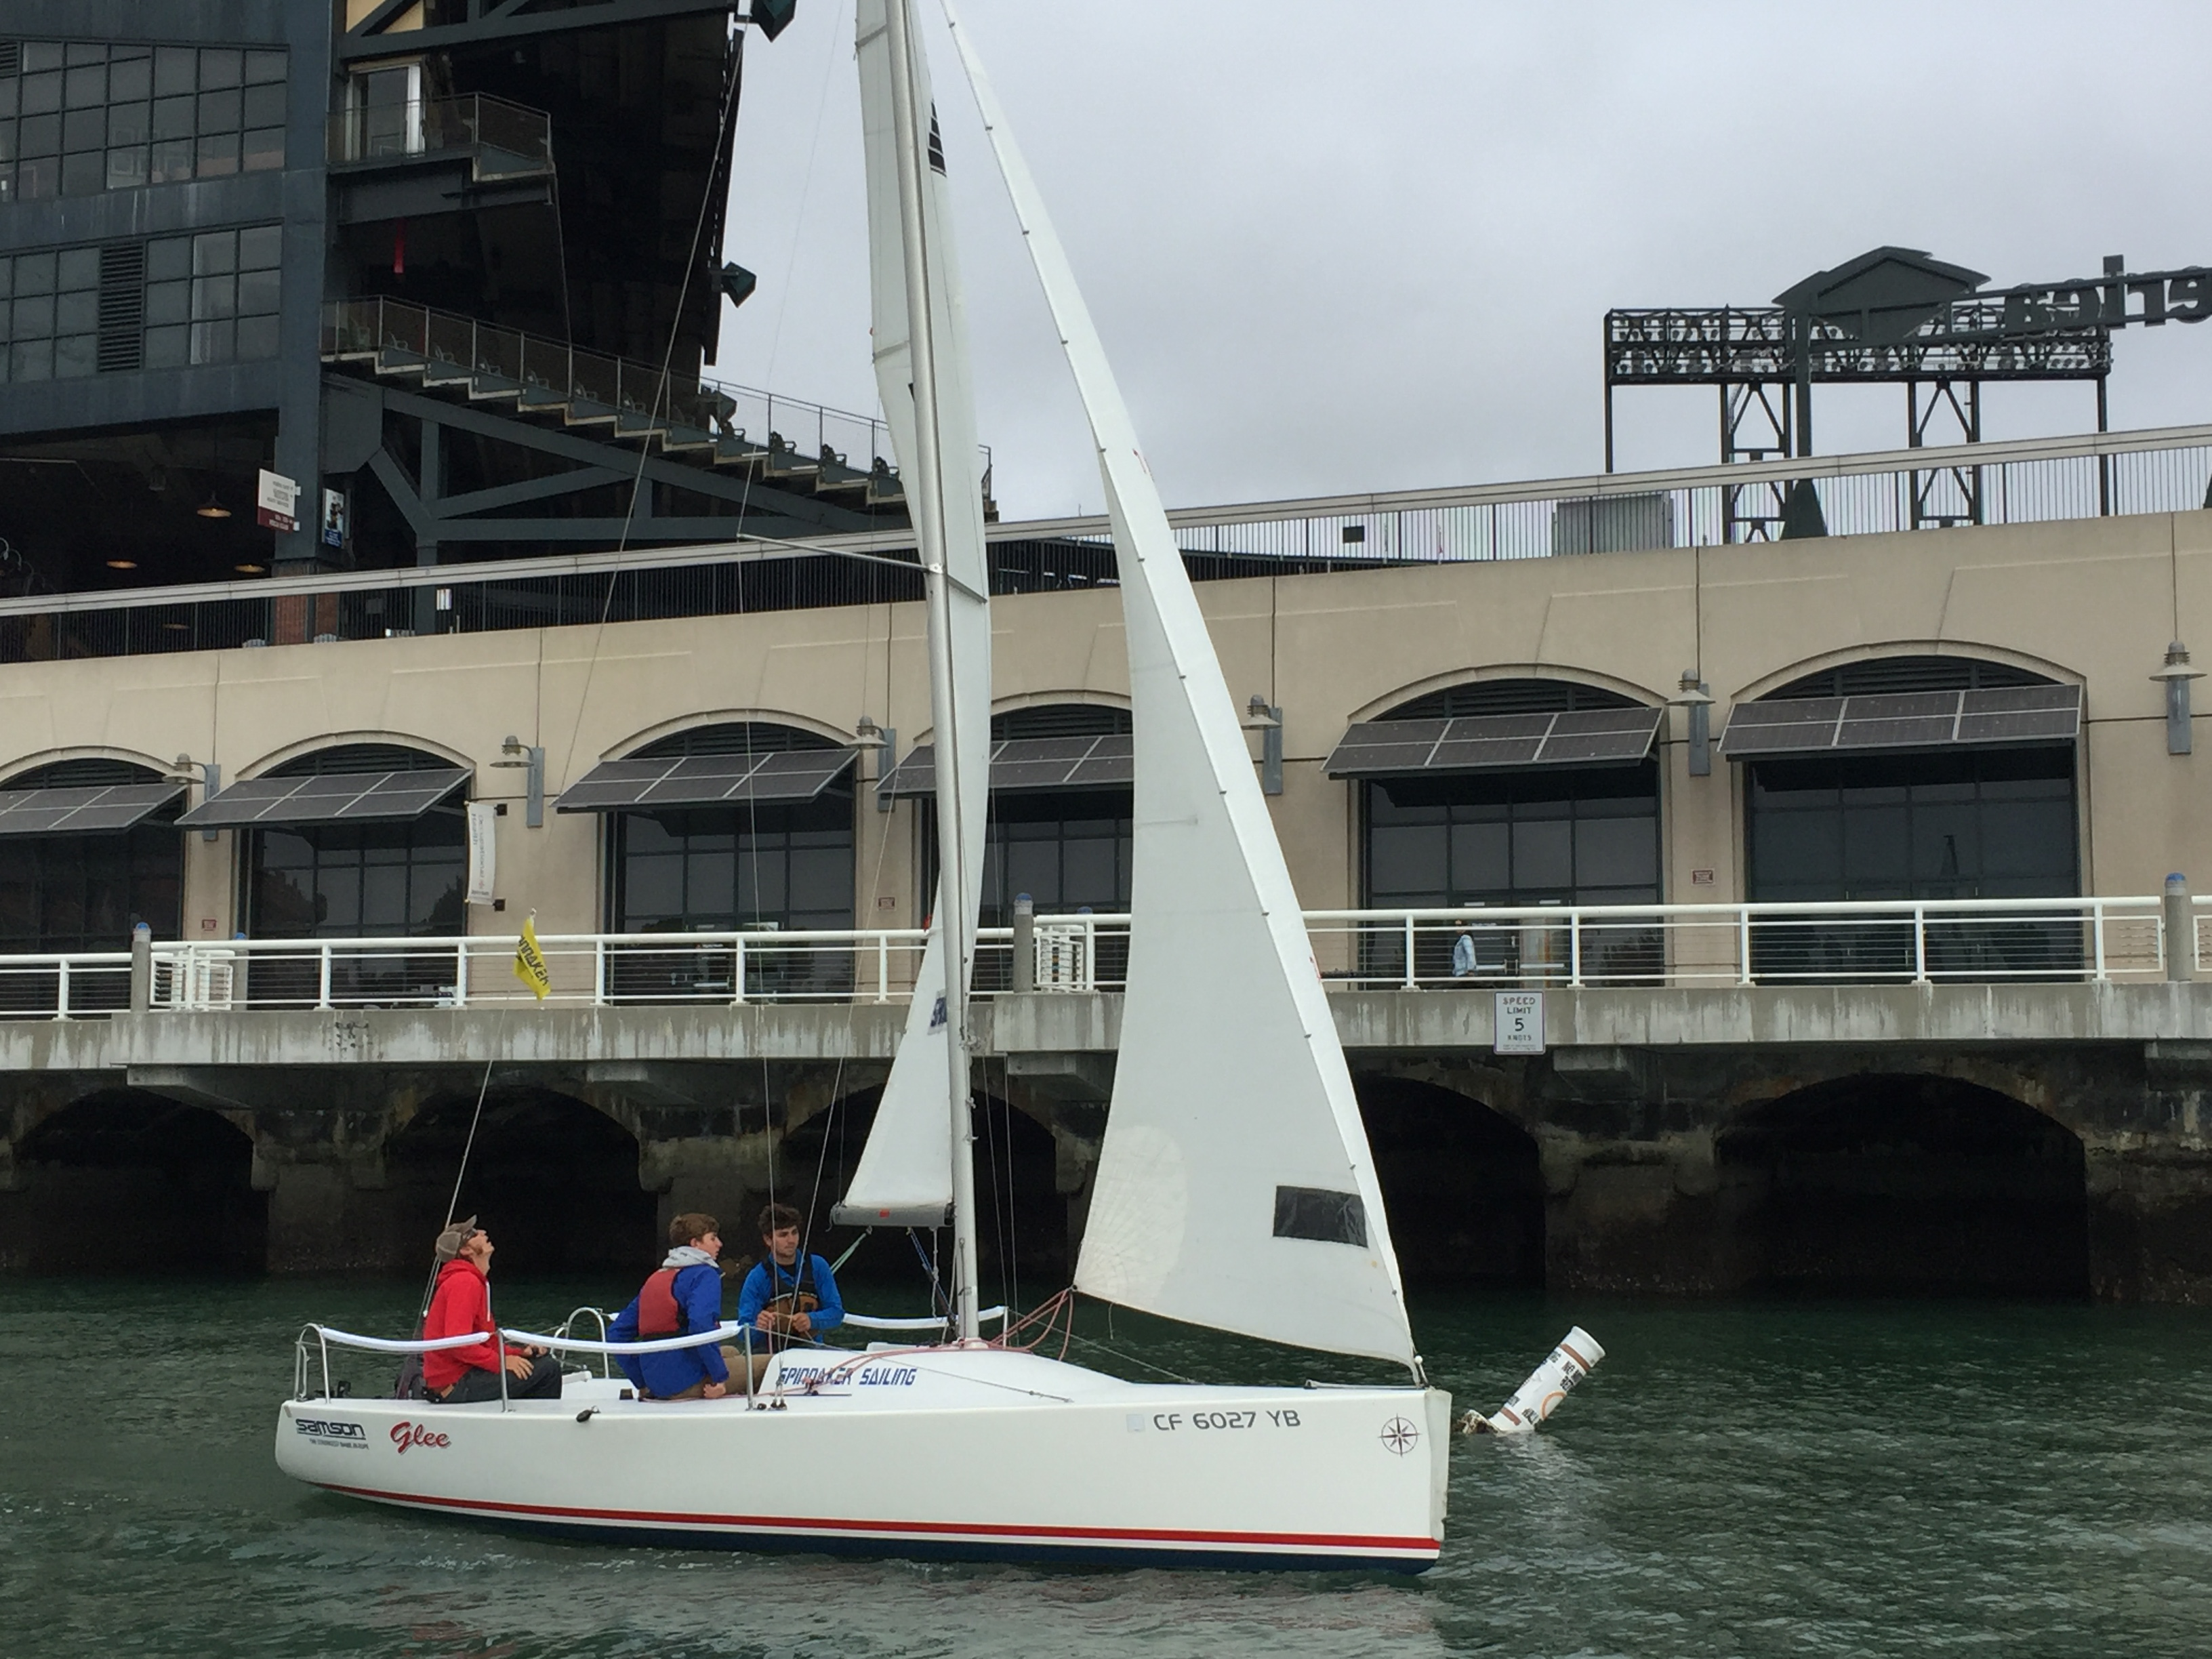 Learn To Sail Keelboat Sailing And More In San Francisco